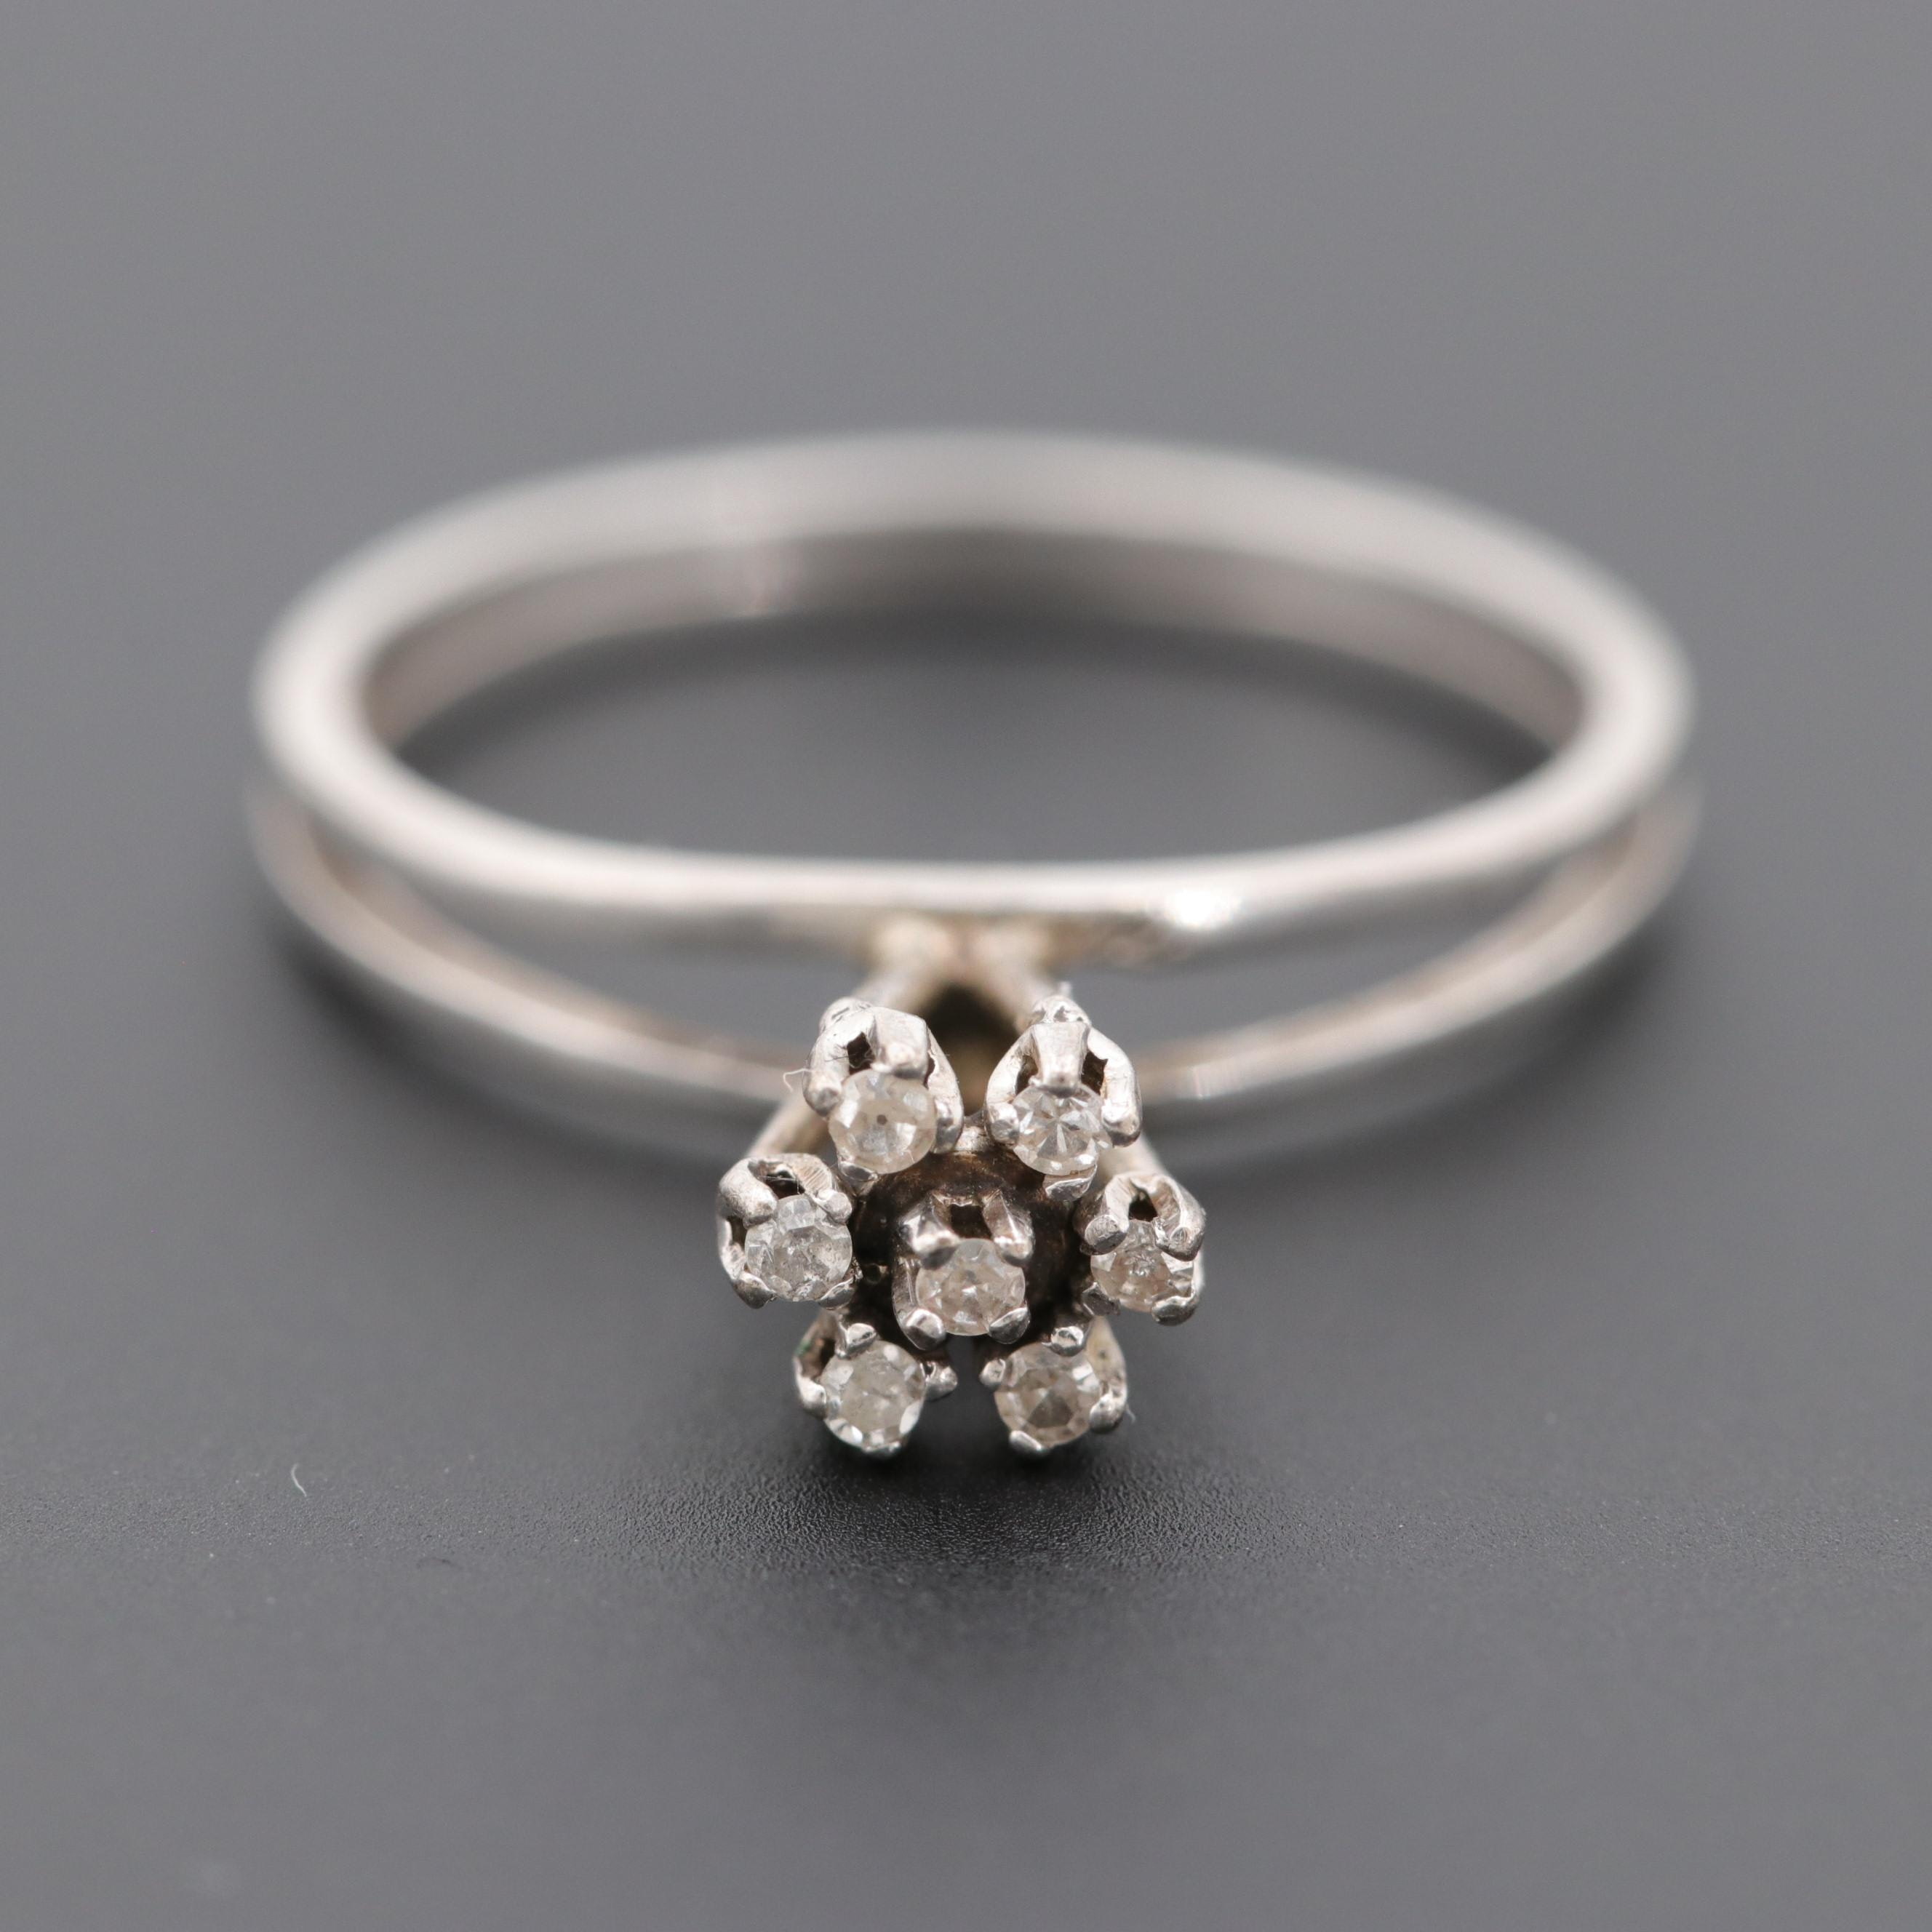 Circa 1940s Silver Palladium Alloy Diamond Ring